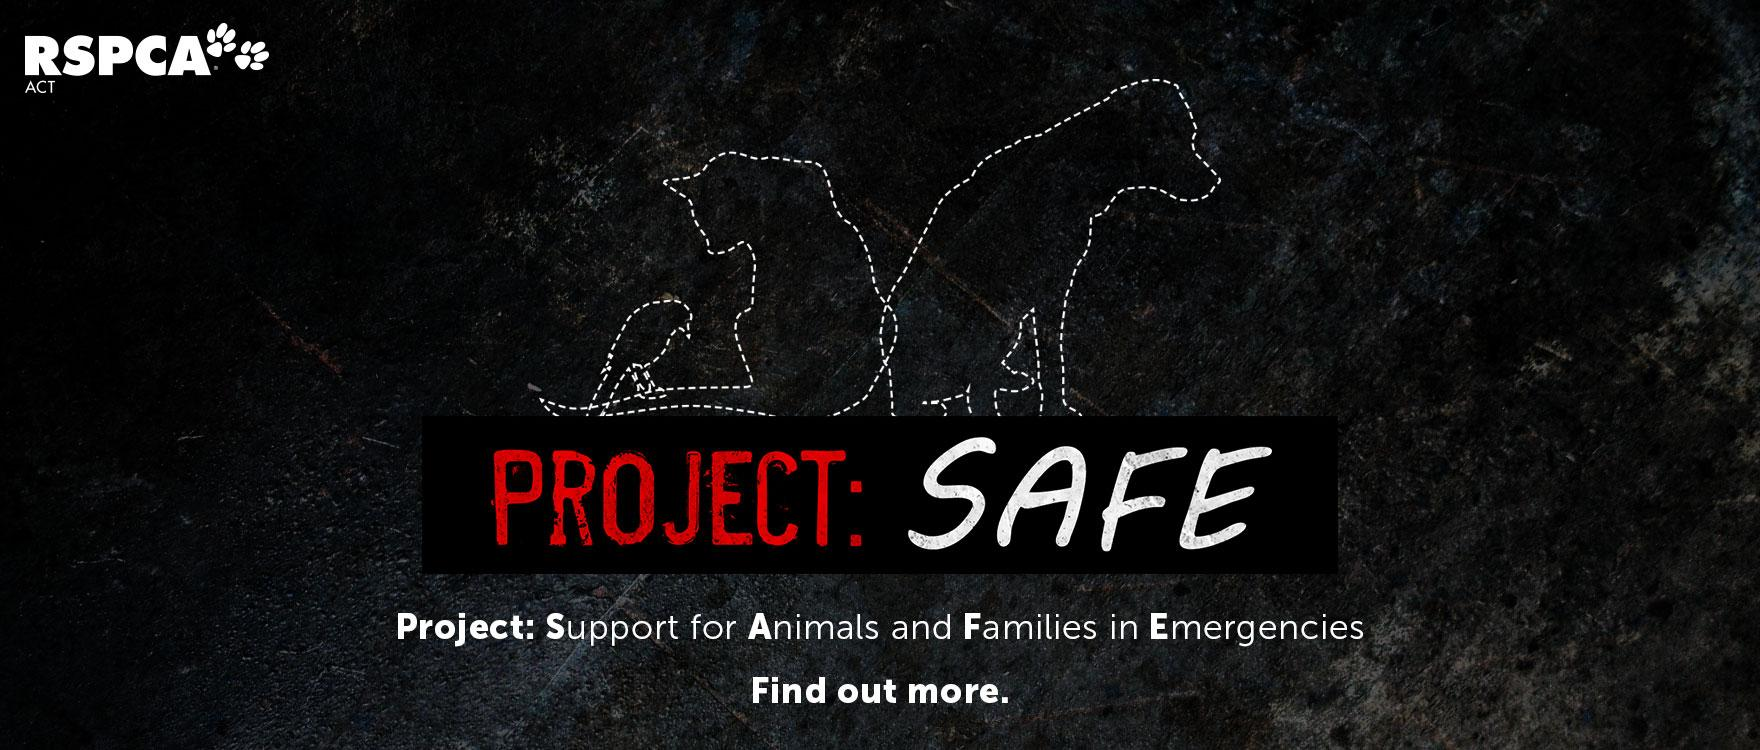 Project: SAFE